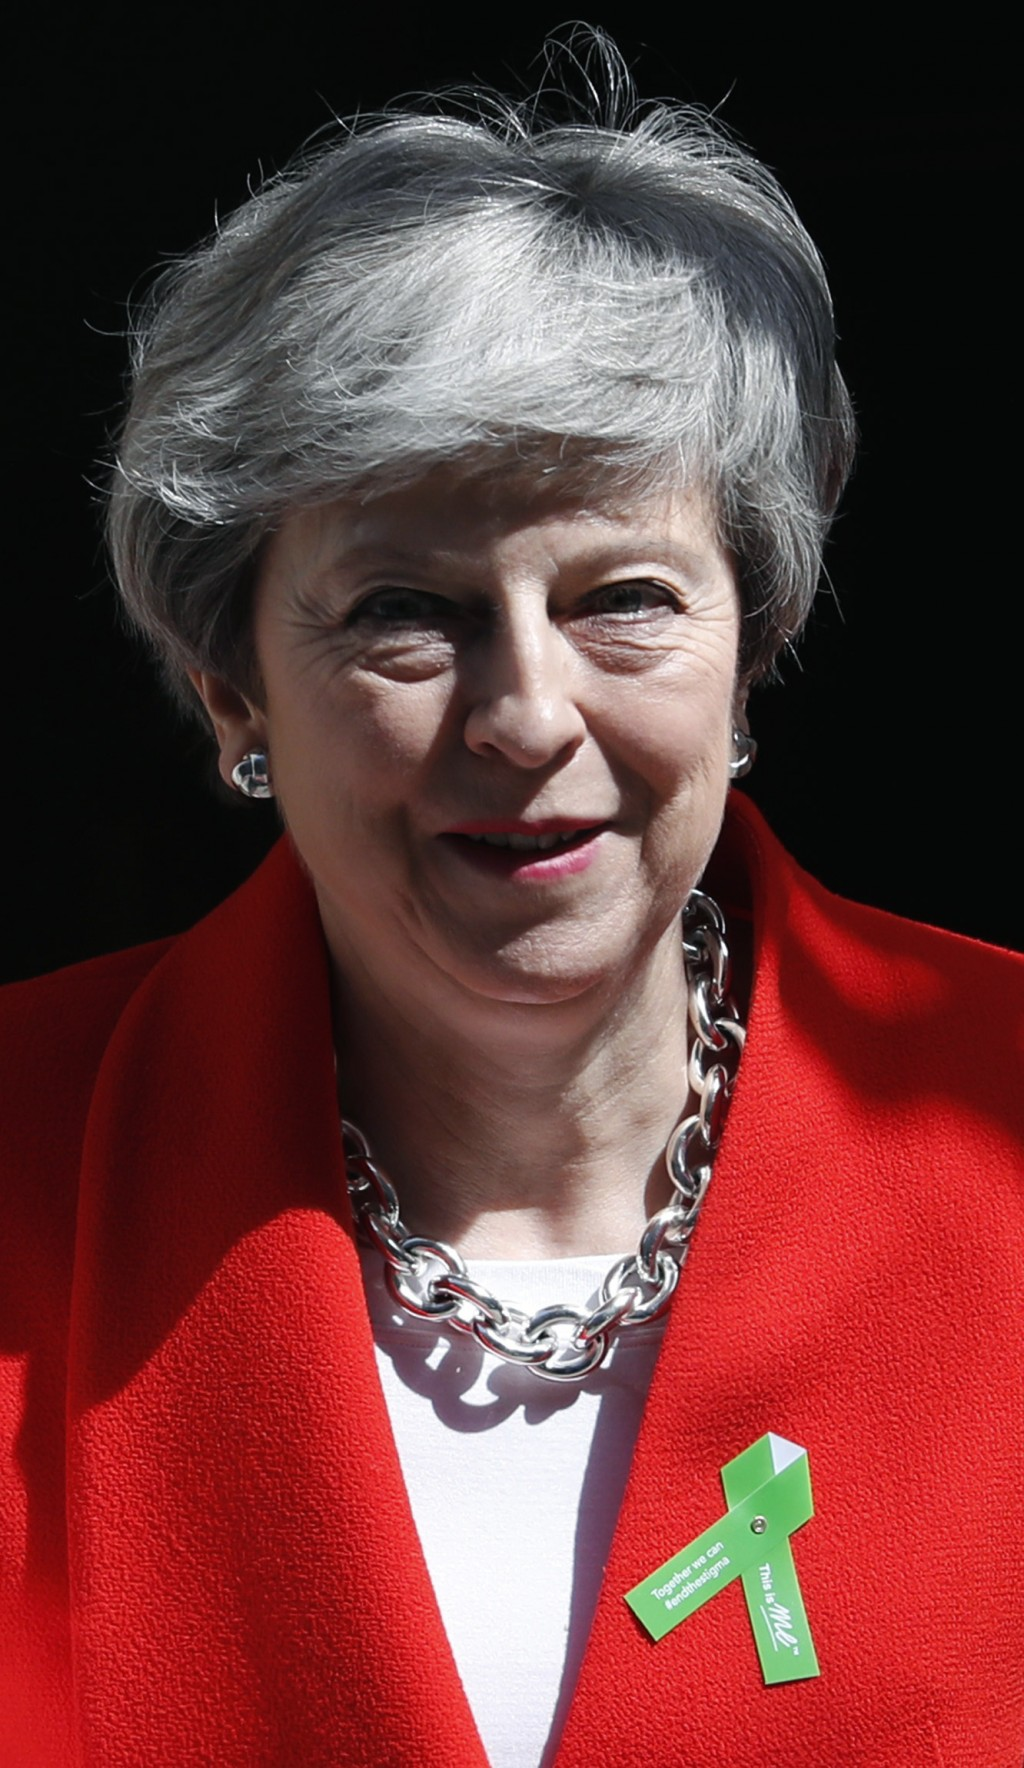 Britain's Prime Minister Theresa May leavse 10 Downing Street for her weekly Prime Minister's Questions at the House of Commons in London, Wednesday,